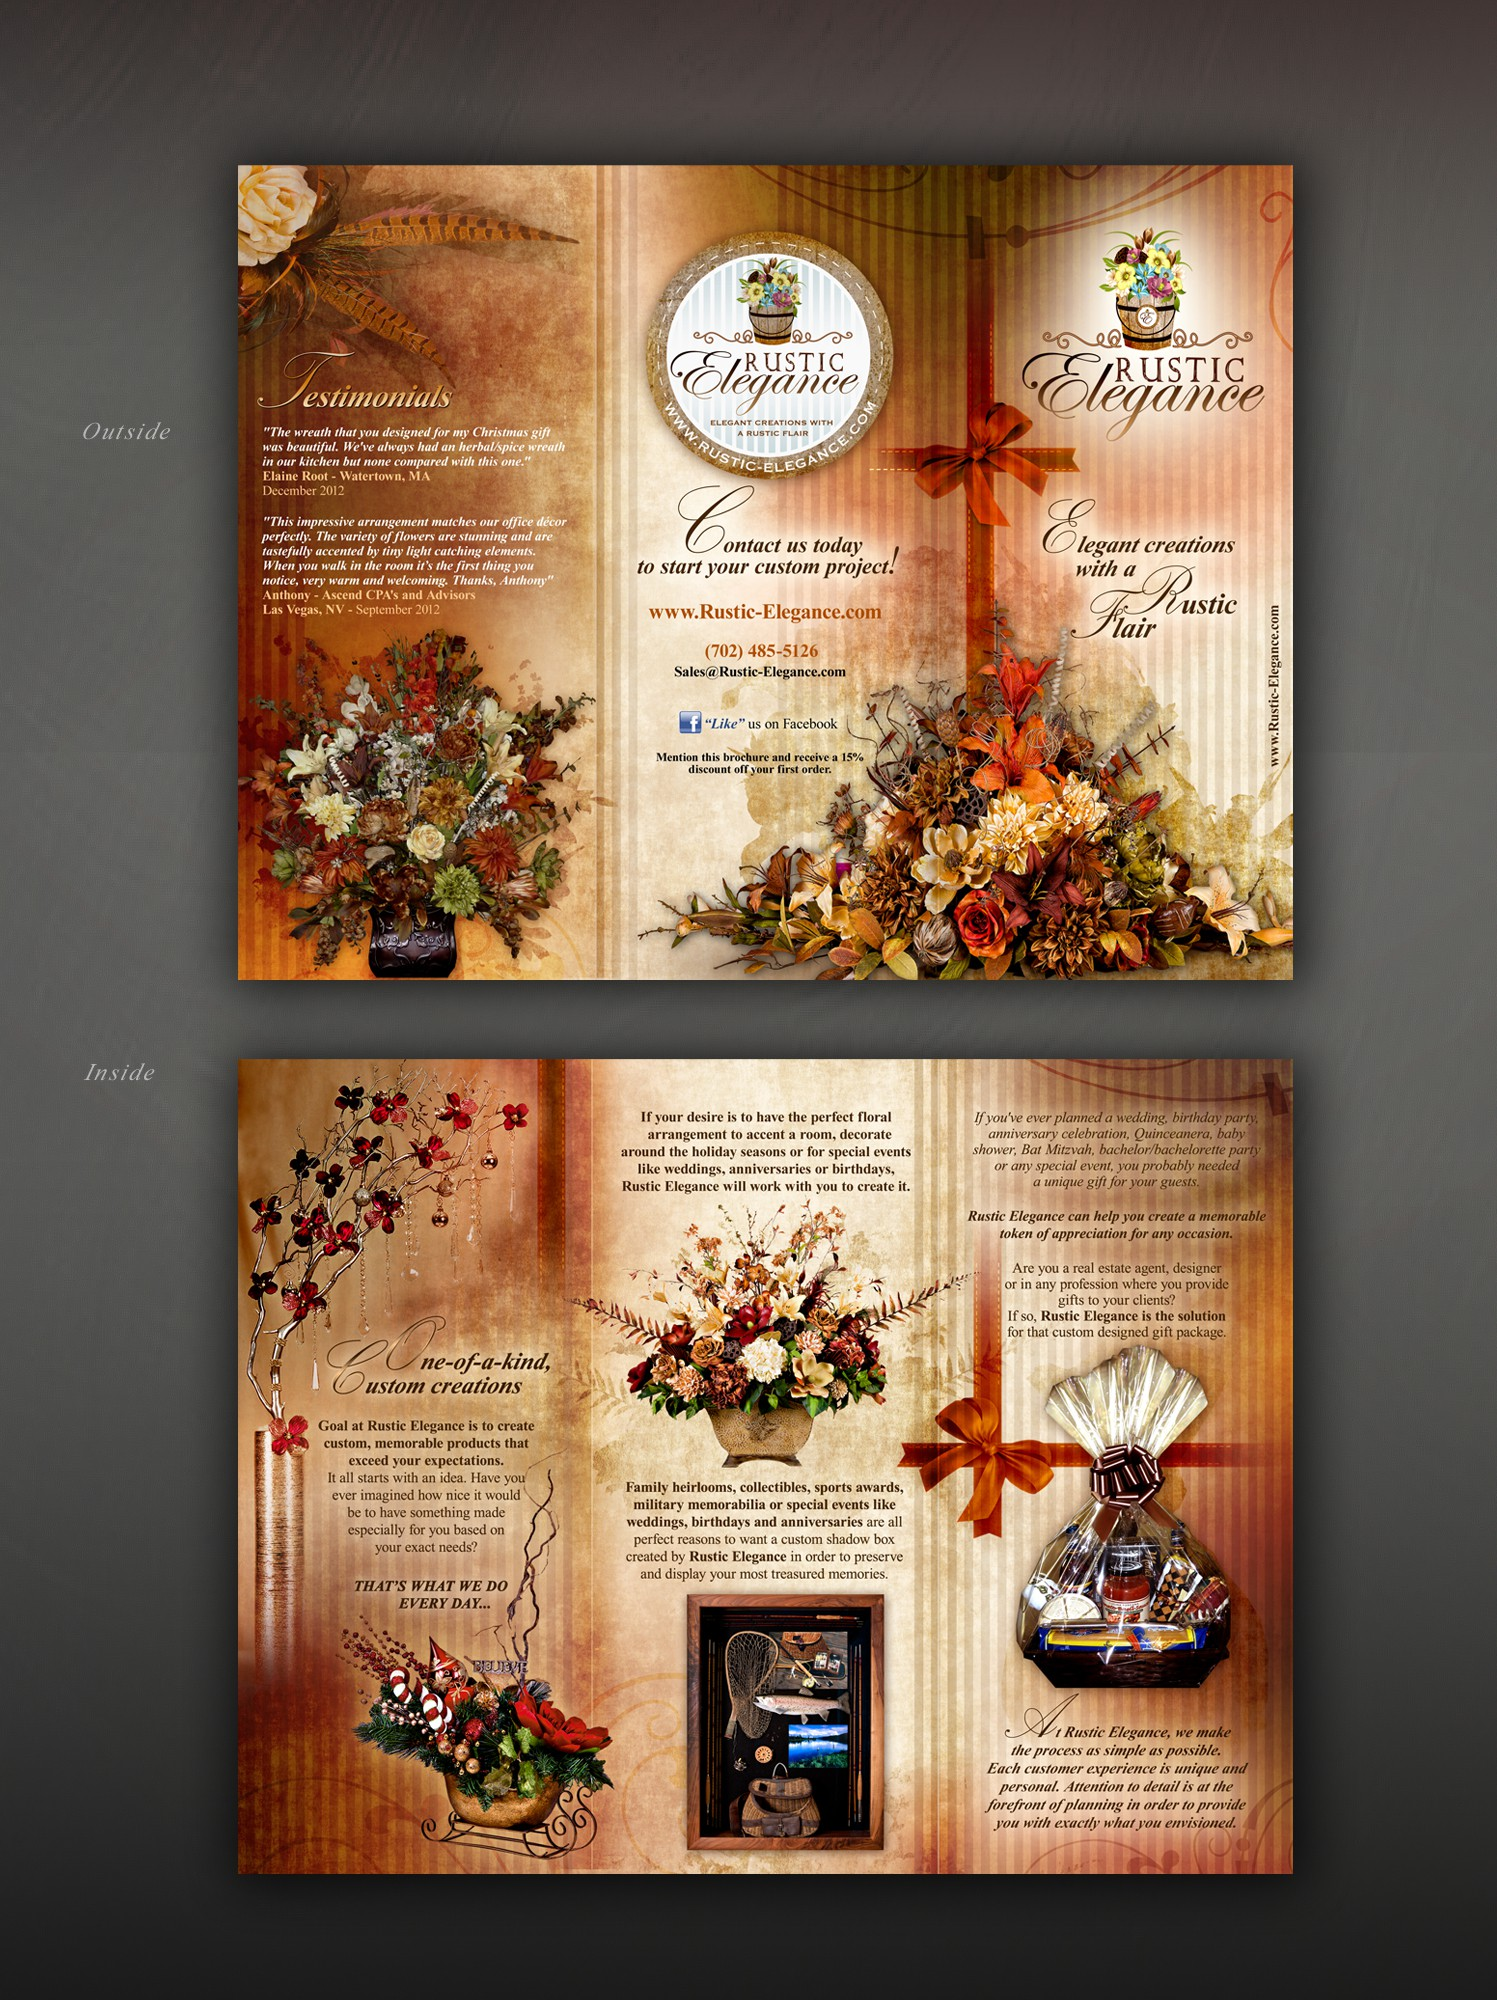 Help Rustic Elegance with a new brochure design